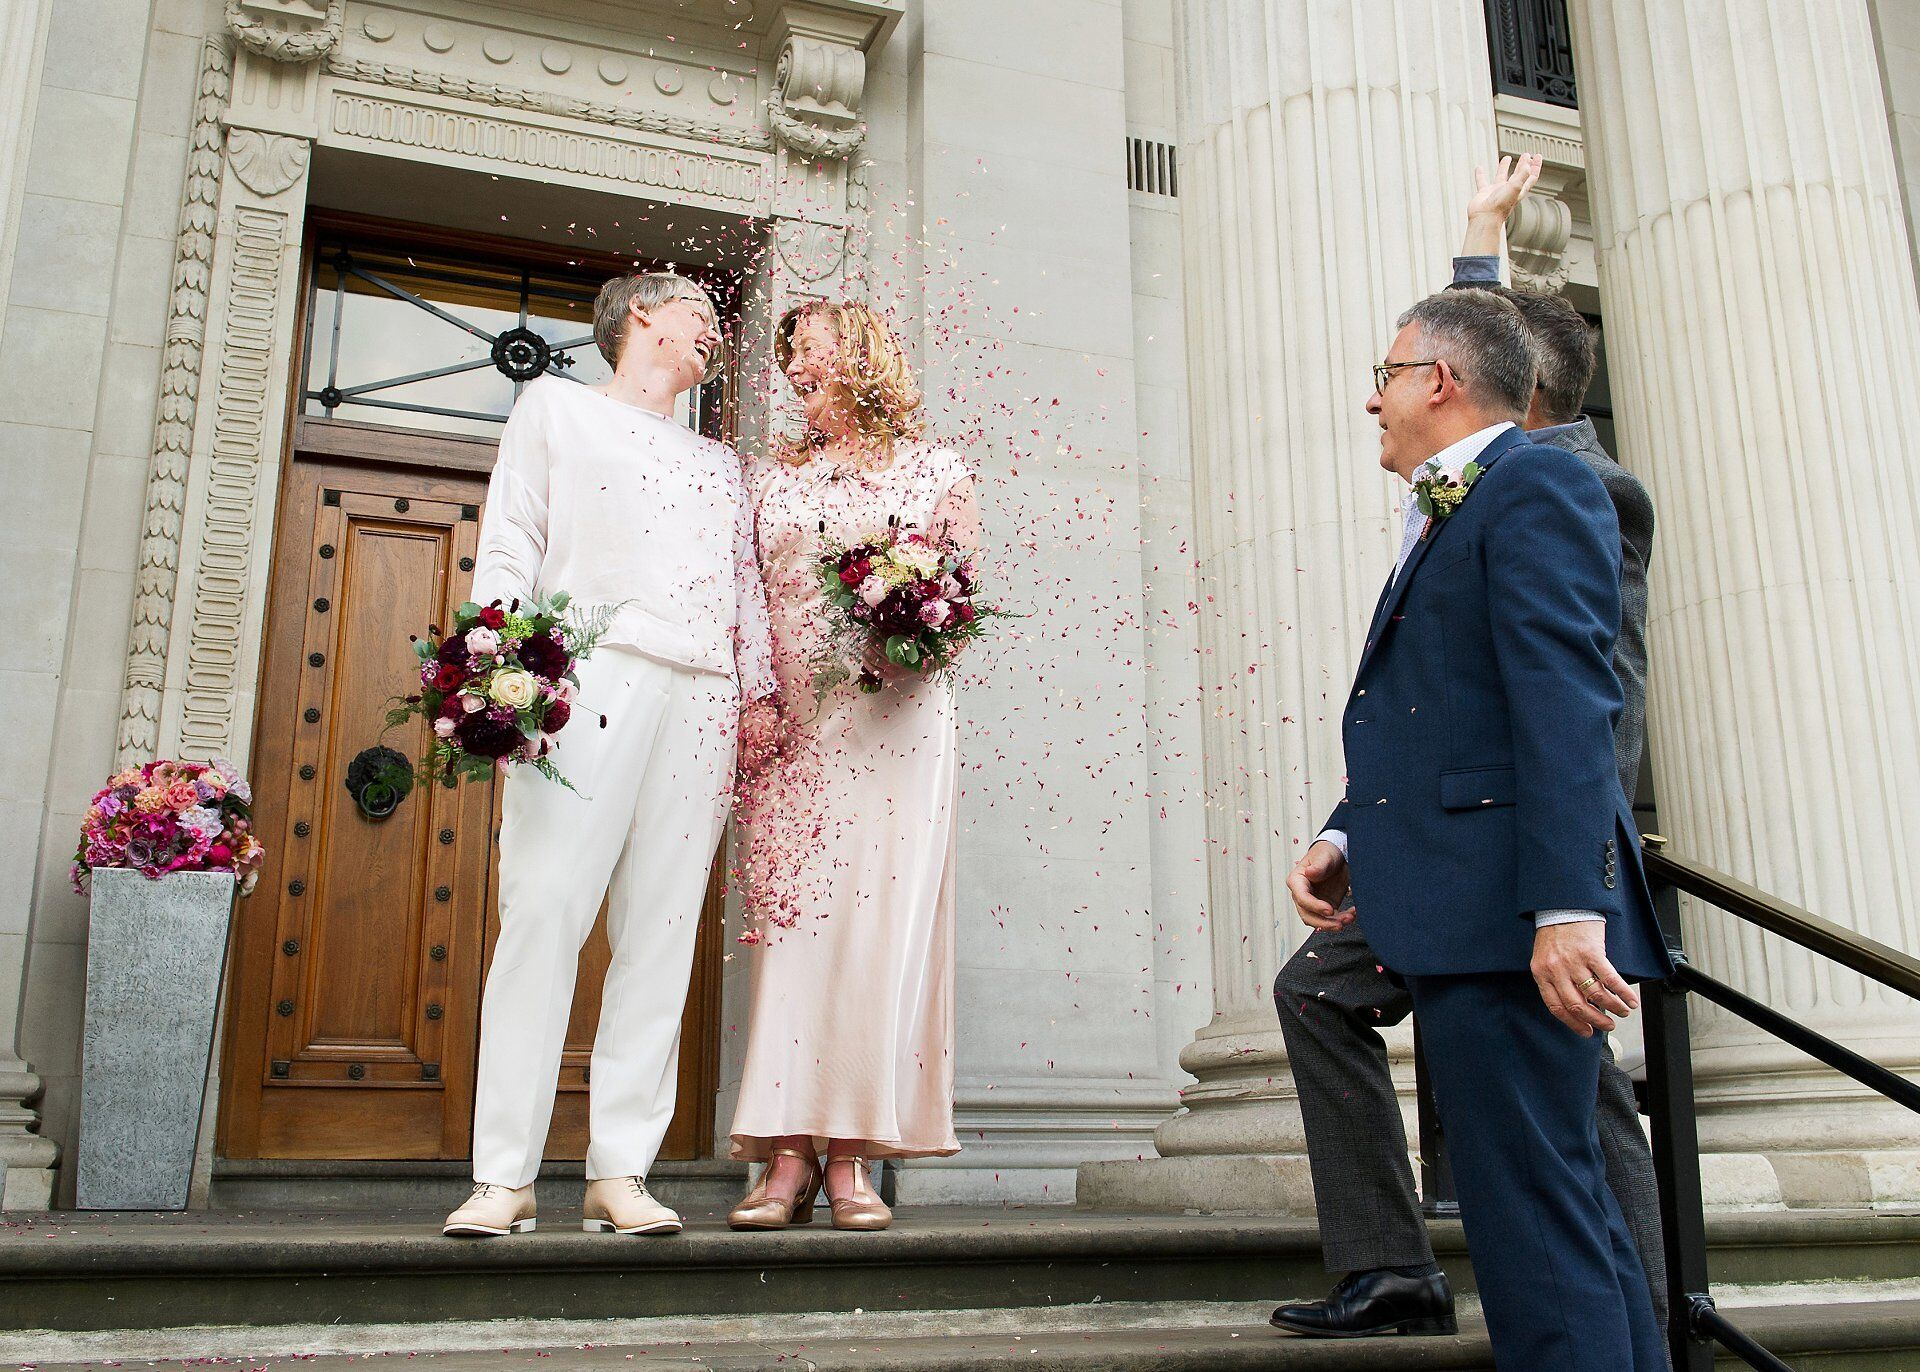 confetti from shropshire petals throw by guests over two brides leaving old marylebone town hall